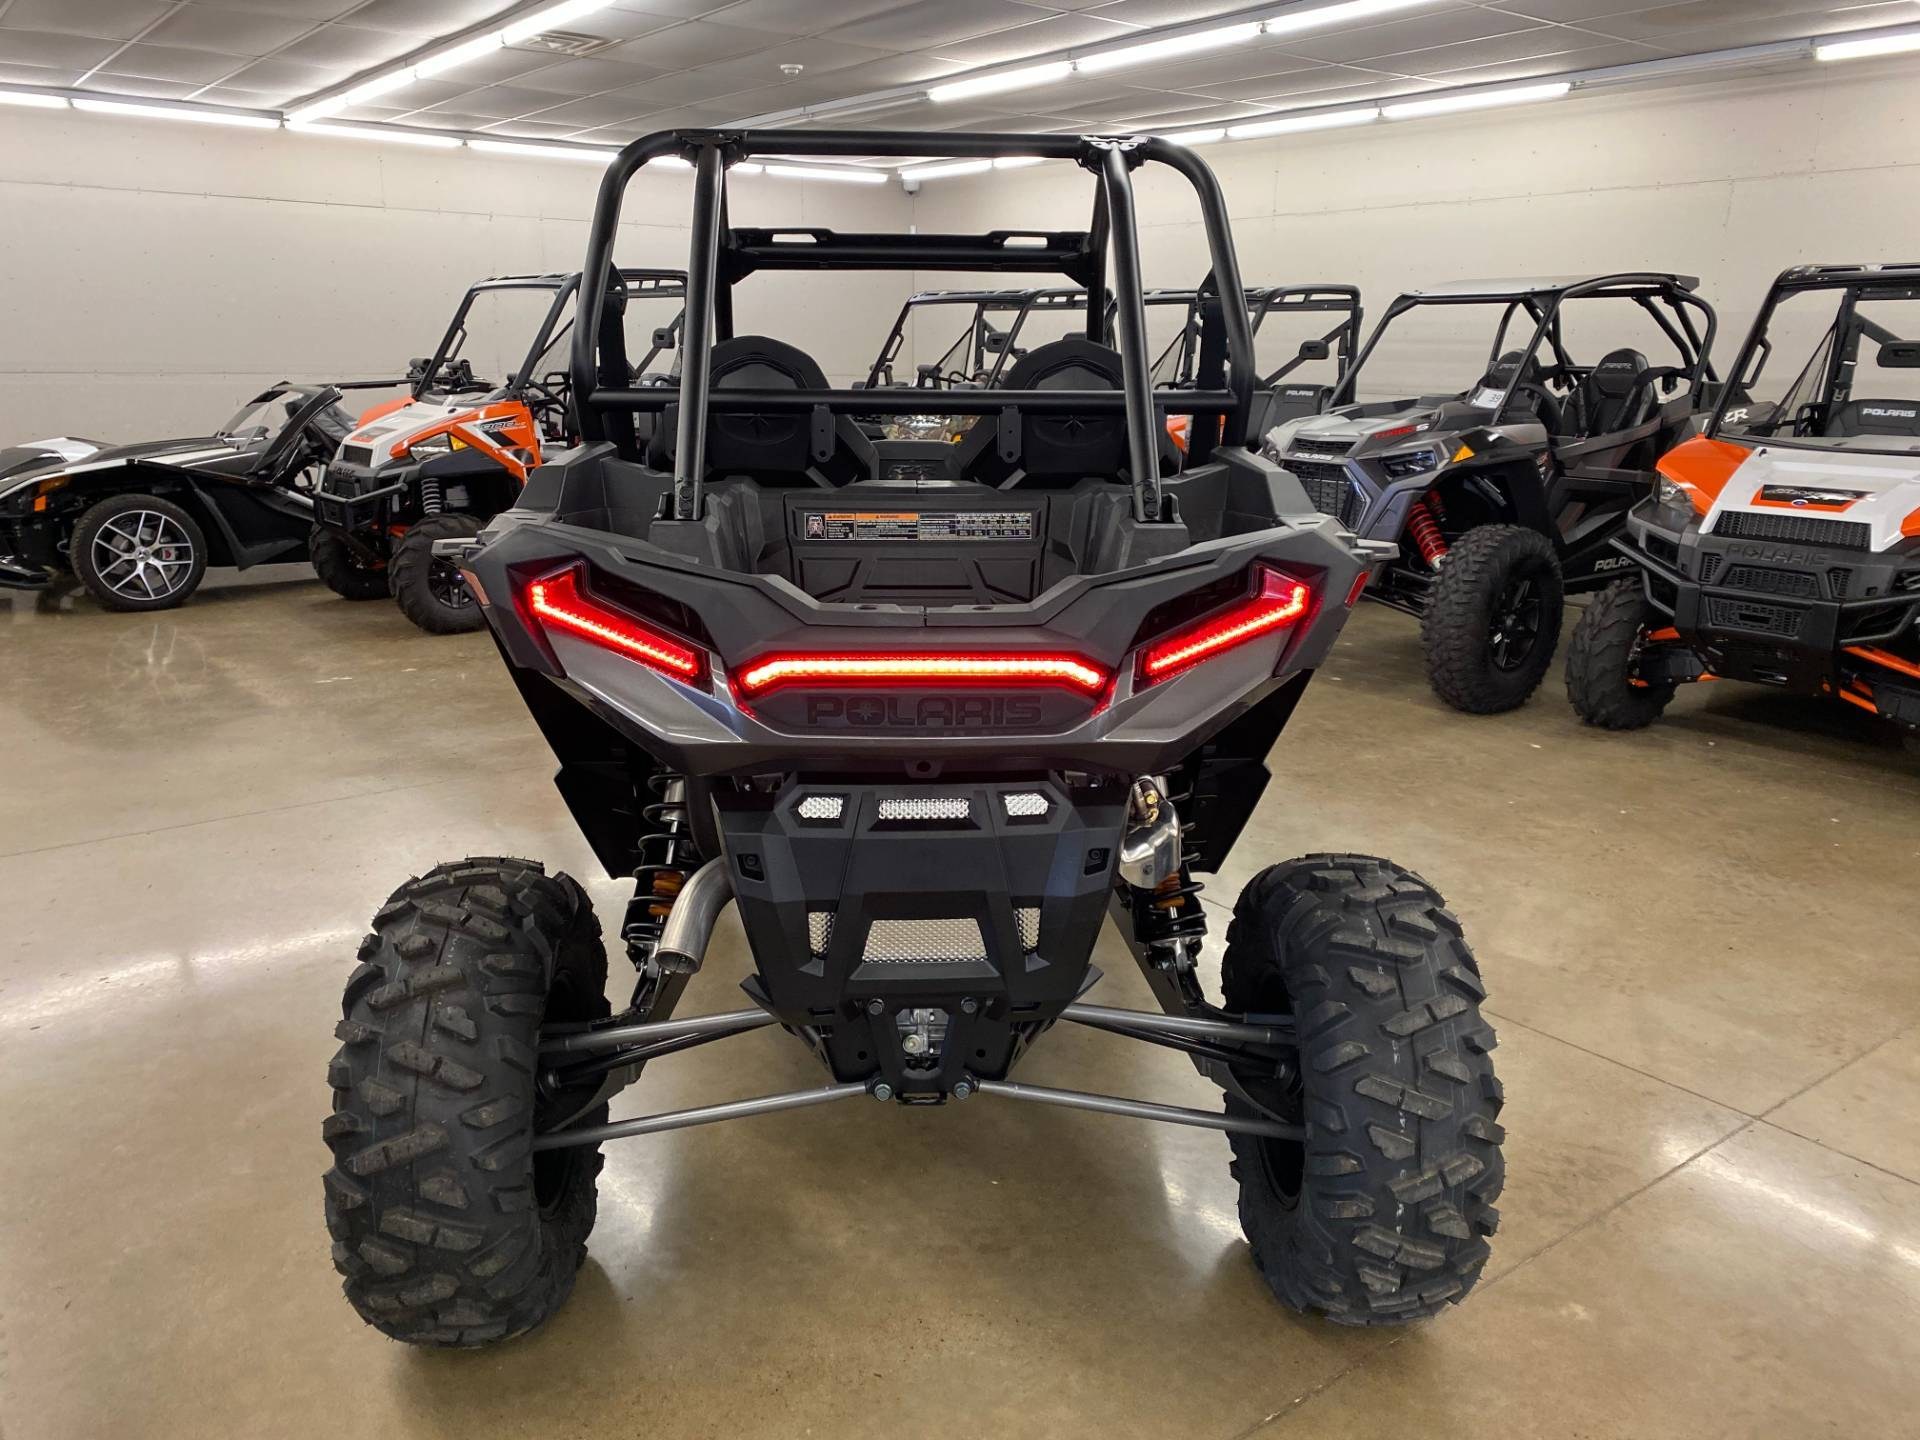 2020 Polaris RZR XP 1000 LE in Beaver Falls, Pennsylvania - Photo 4